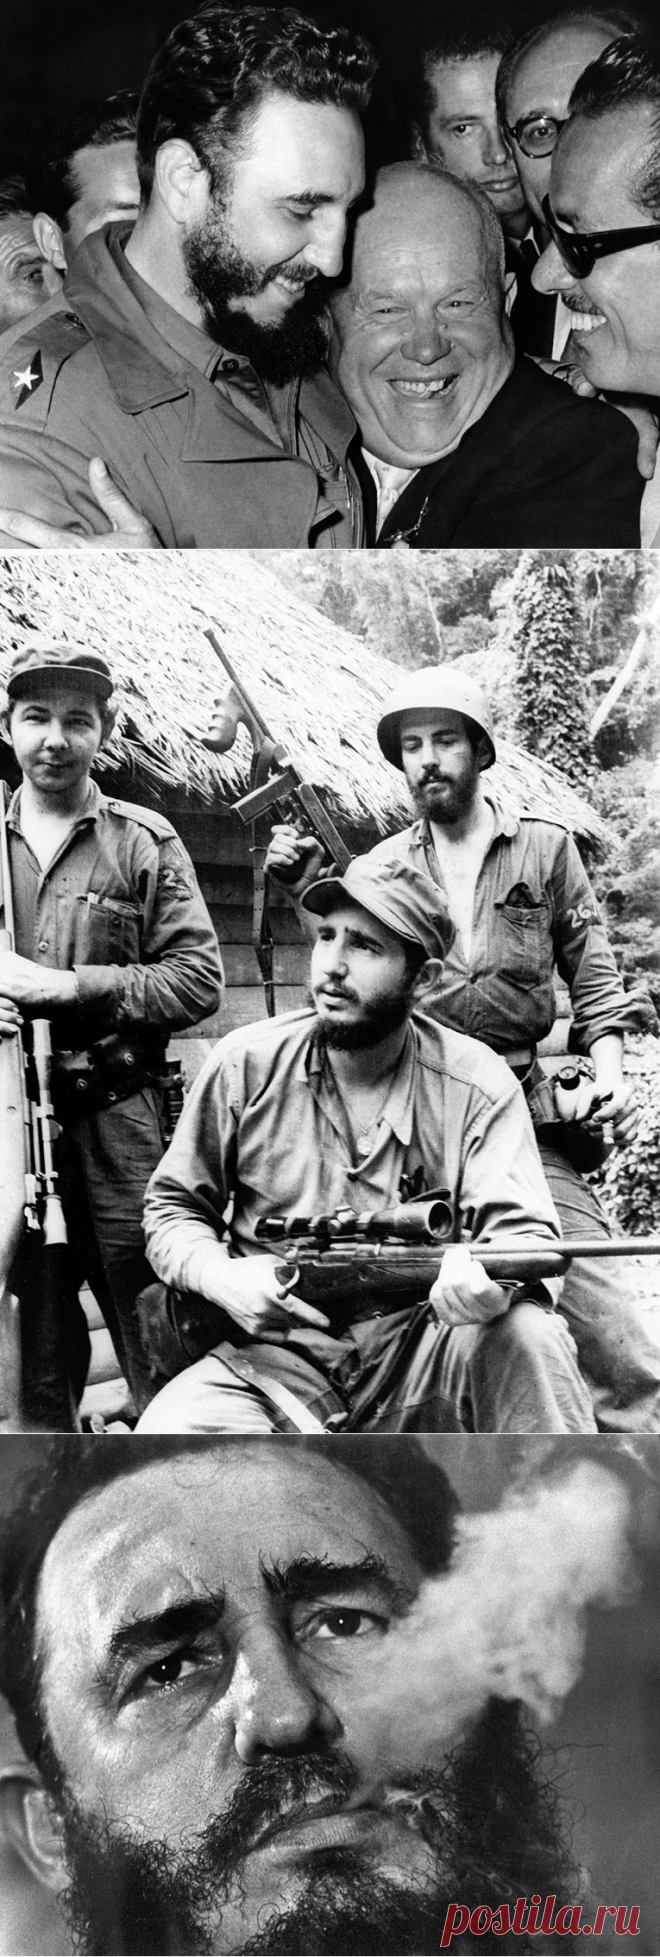 the country of cuba before the rule of fidel castro 1959 cuba becomes the first communist state in the western hemisphere after fidel castro, a 32-year-old lawyer, leads his rebels, known as the 26 july army, to victory on the streets of havana.